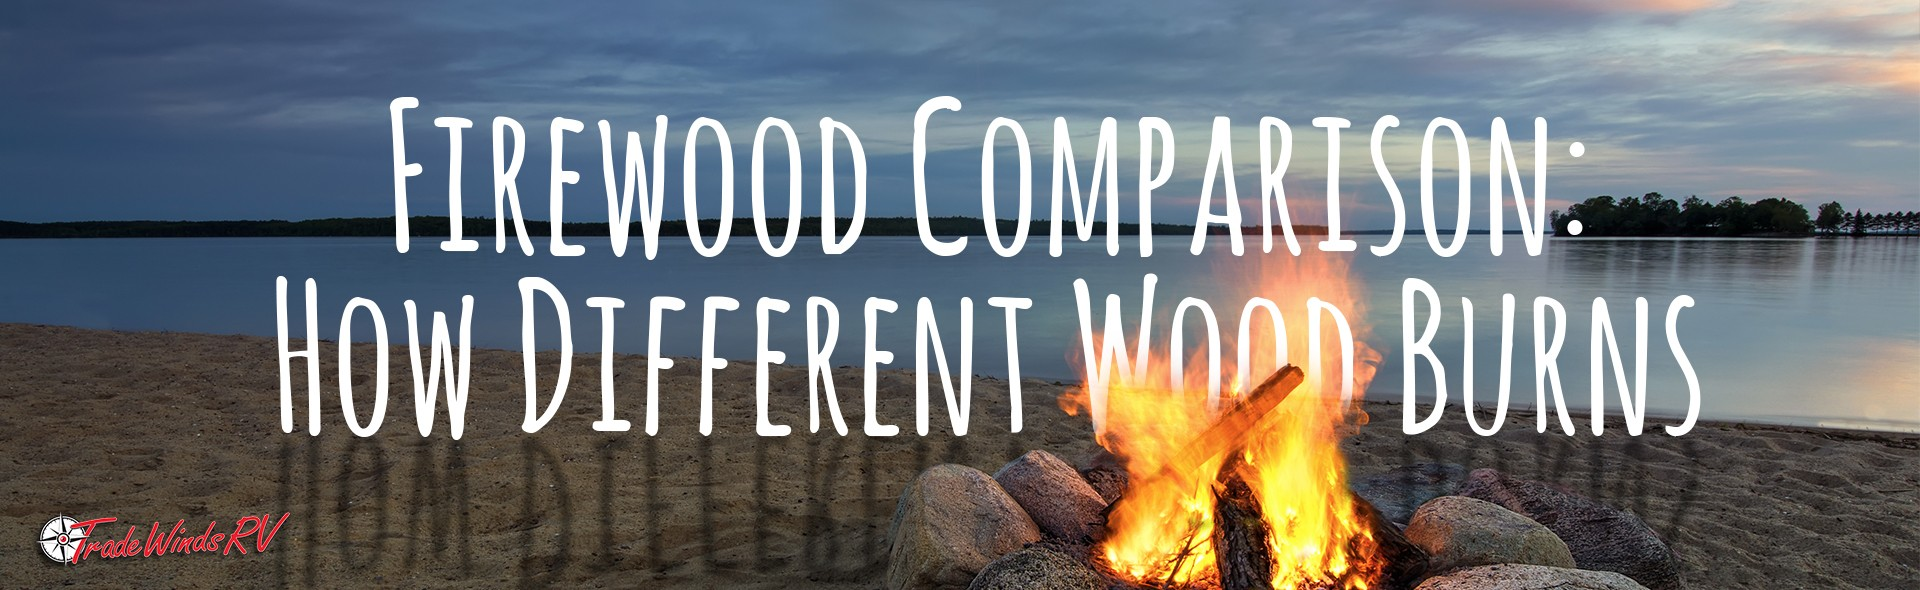 Firewood Comparison- How Different Wood Burns